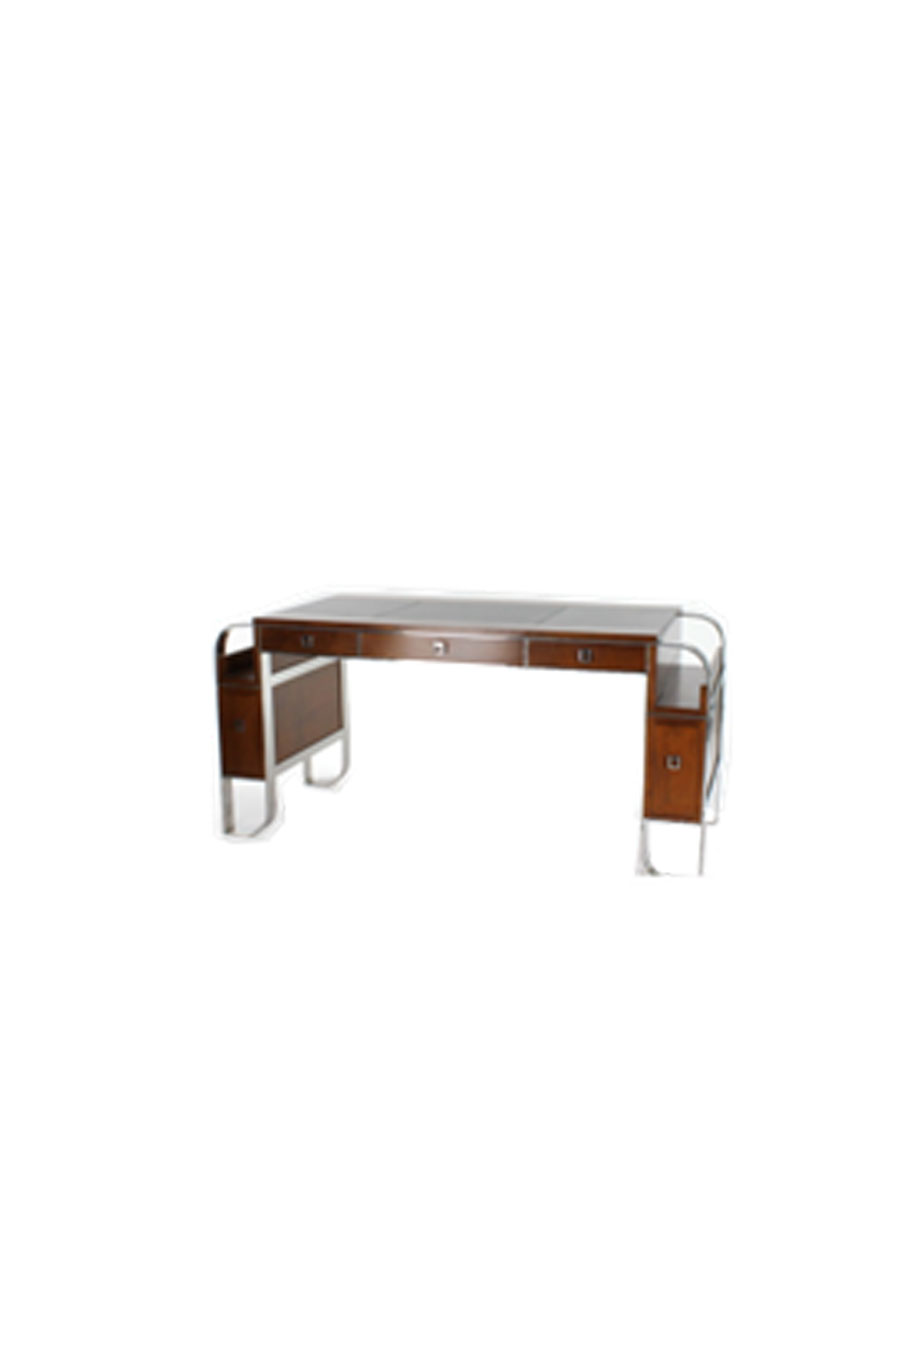 desk-aston-inoxvintage-leather-4062.jpg